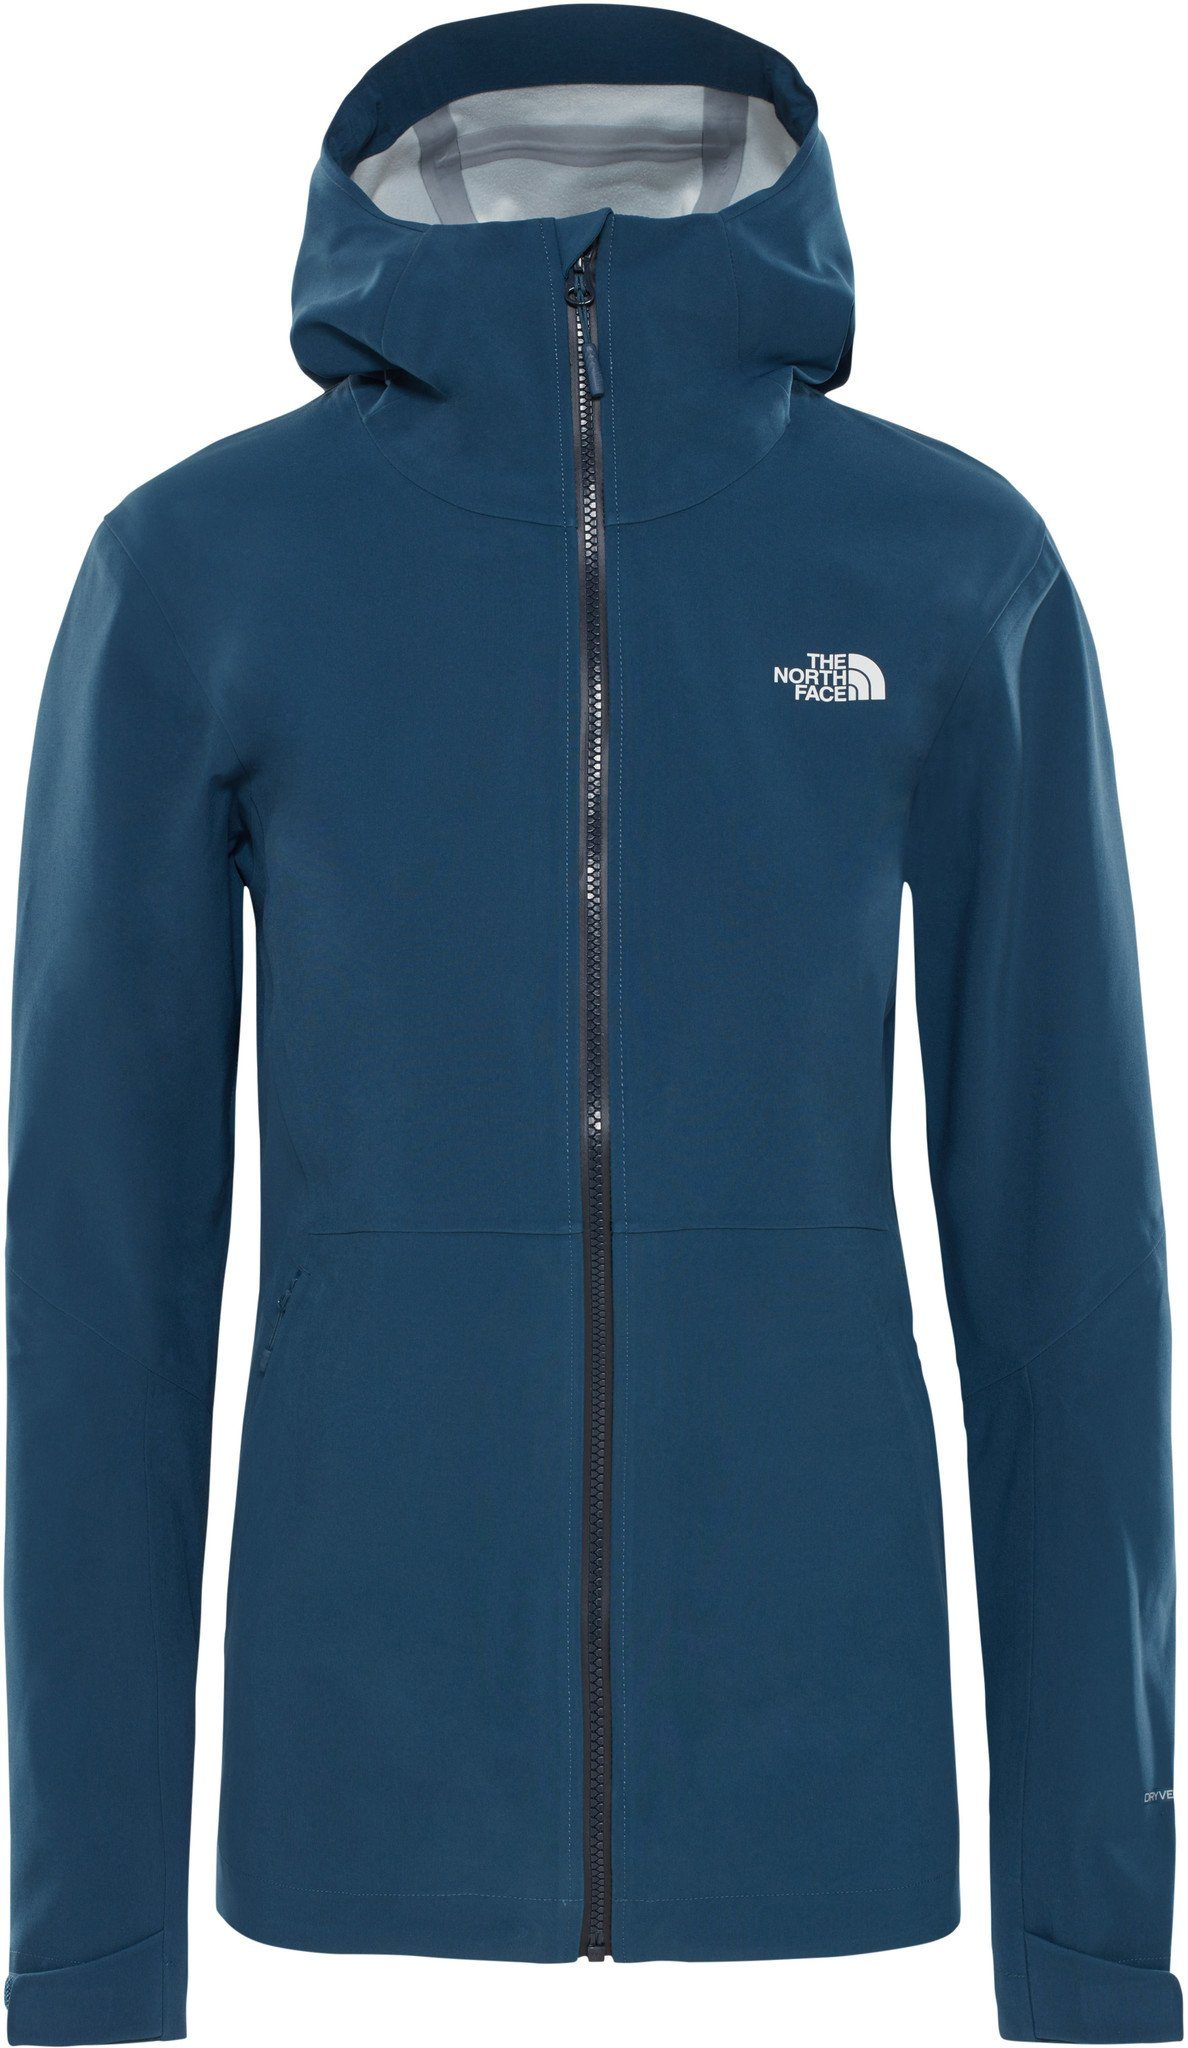 The North Face Outdoorjacke »Apex Flex Dryvent Jacket Women«